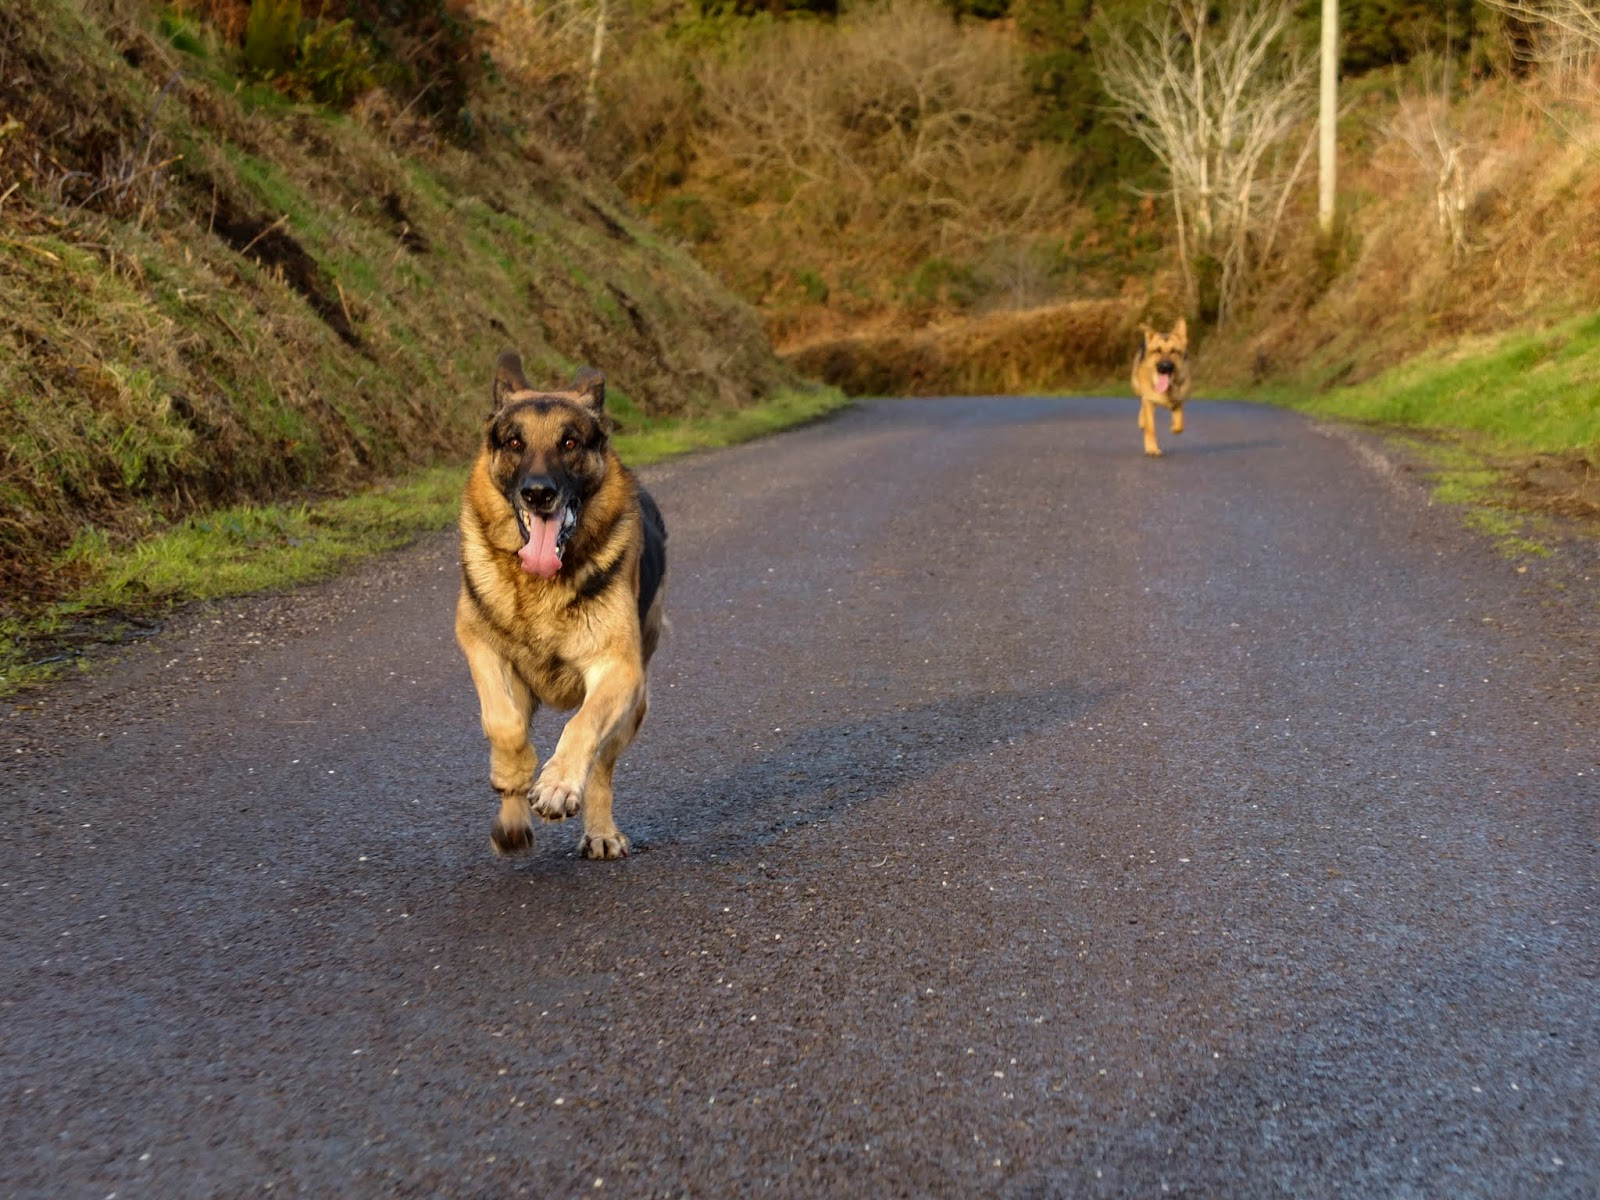 Two German Shepherds racing on a road in the mountains.